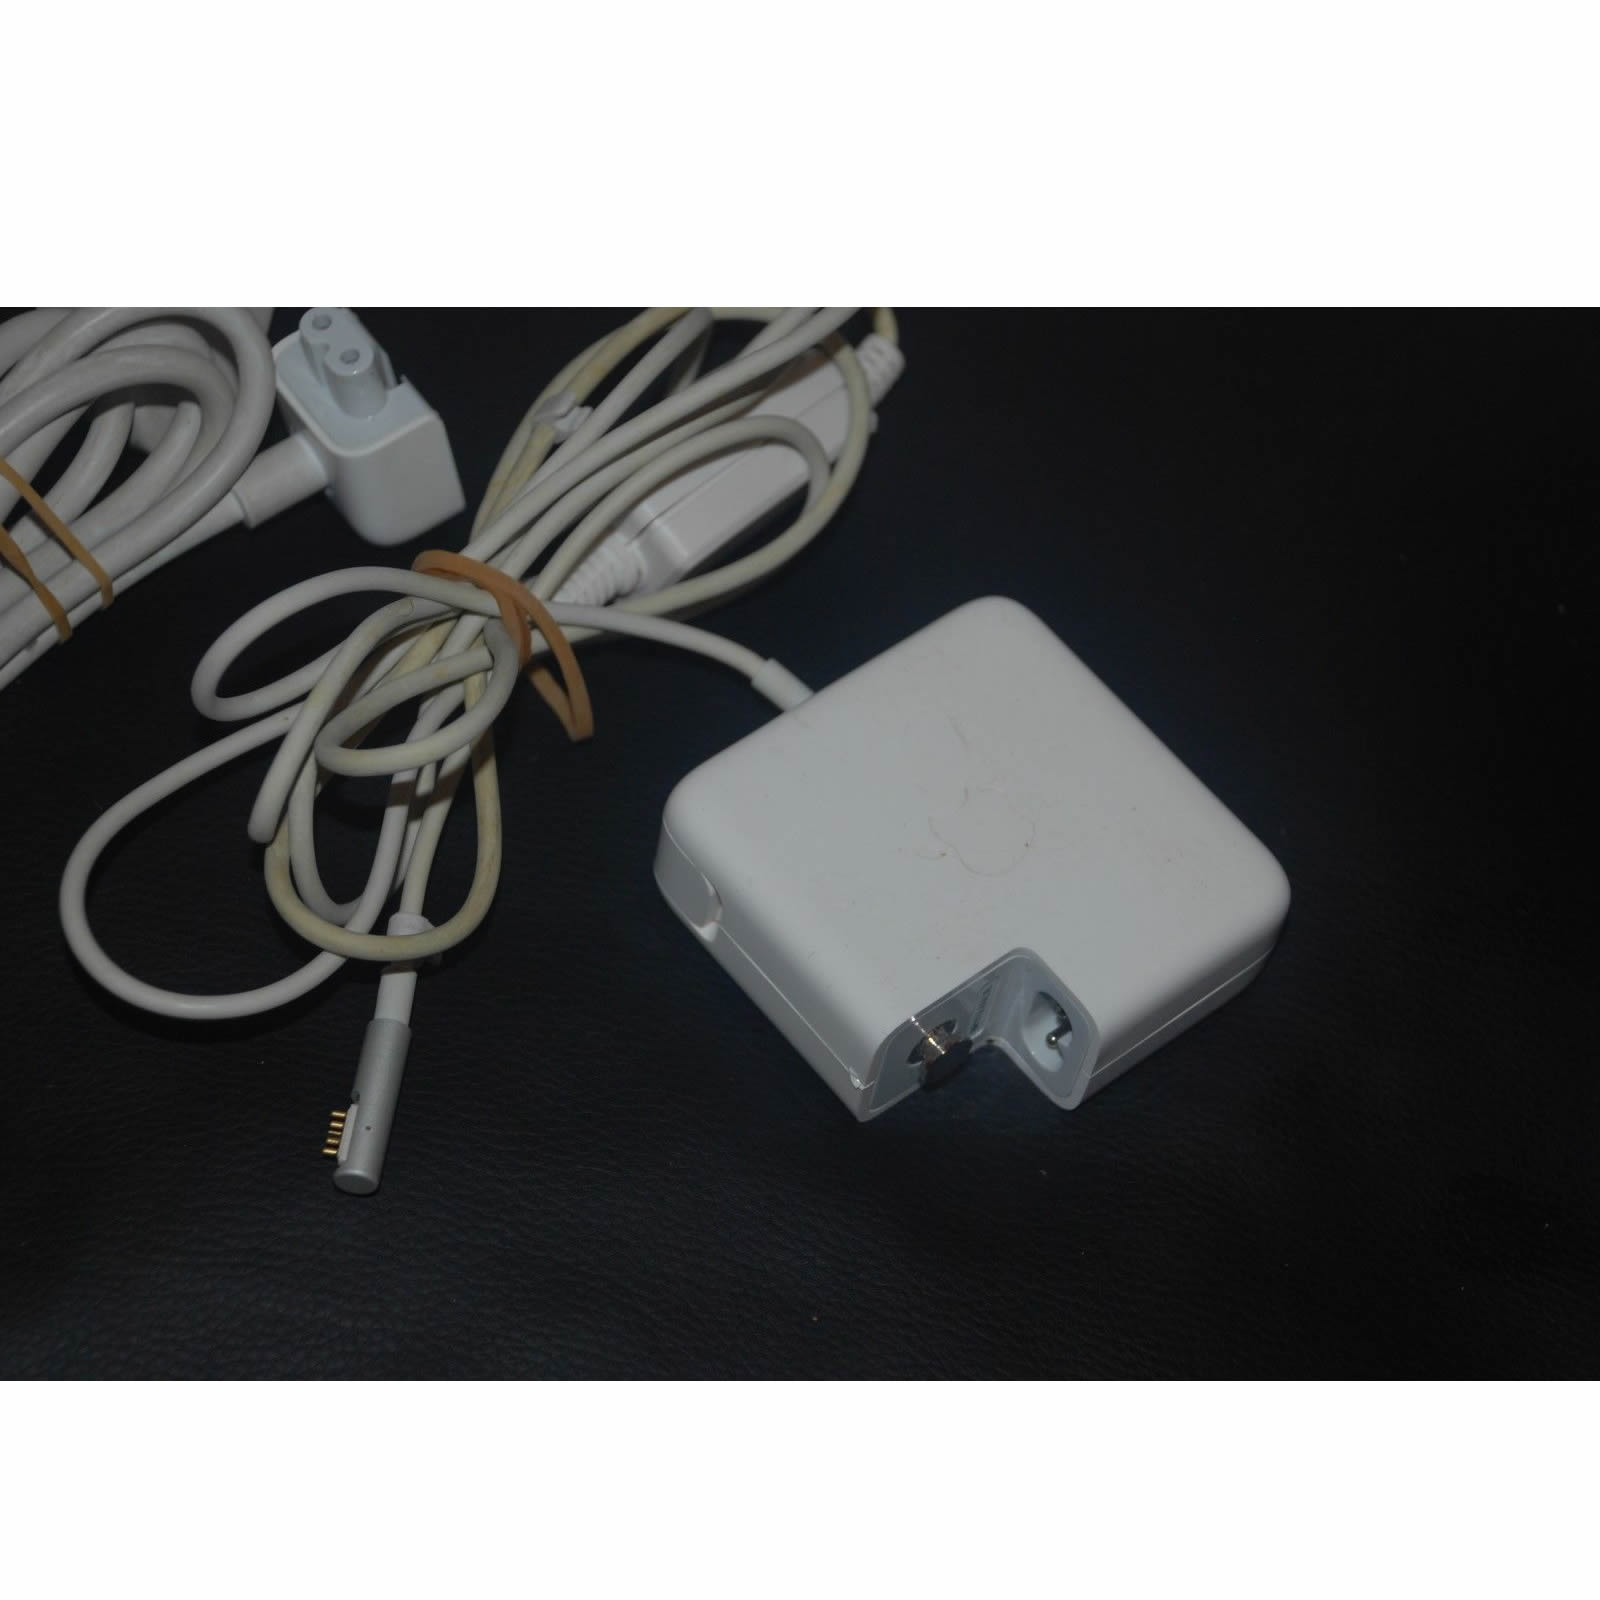 Apple AirPort Extreme A1354 : Alimentation 12V compatible